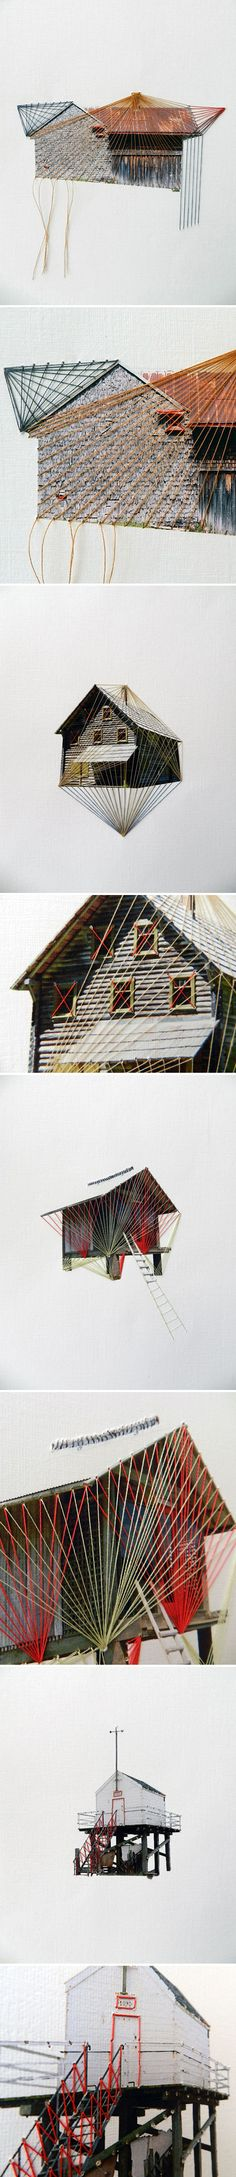 'Lonely Houses' series by Hagar Vardimon-van Heummen from http://www.happy-red-fish.com/